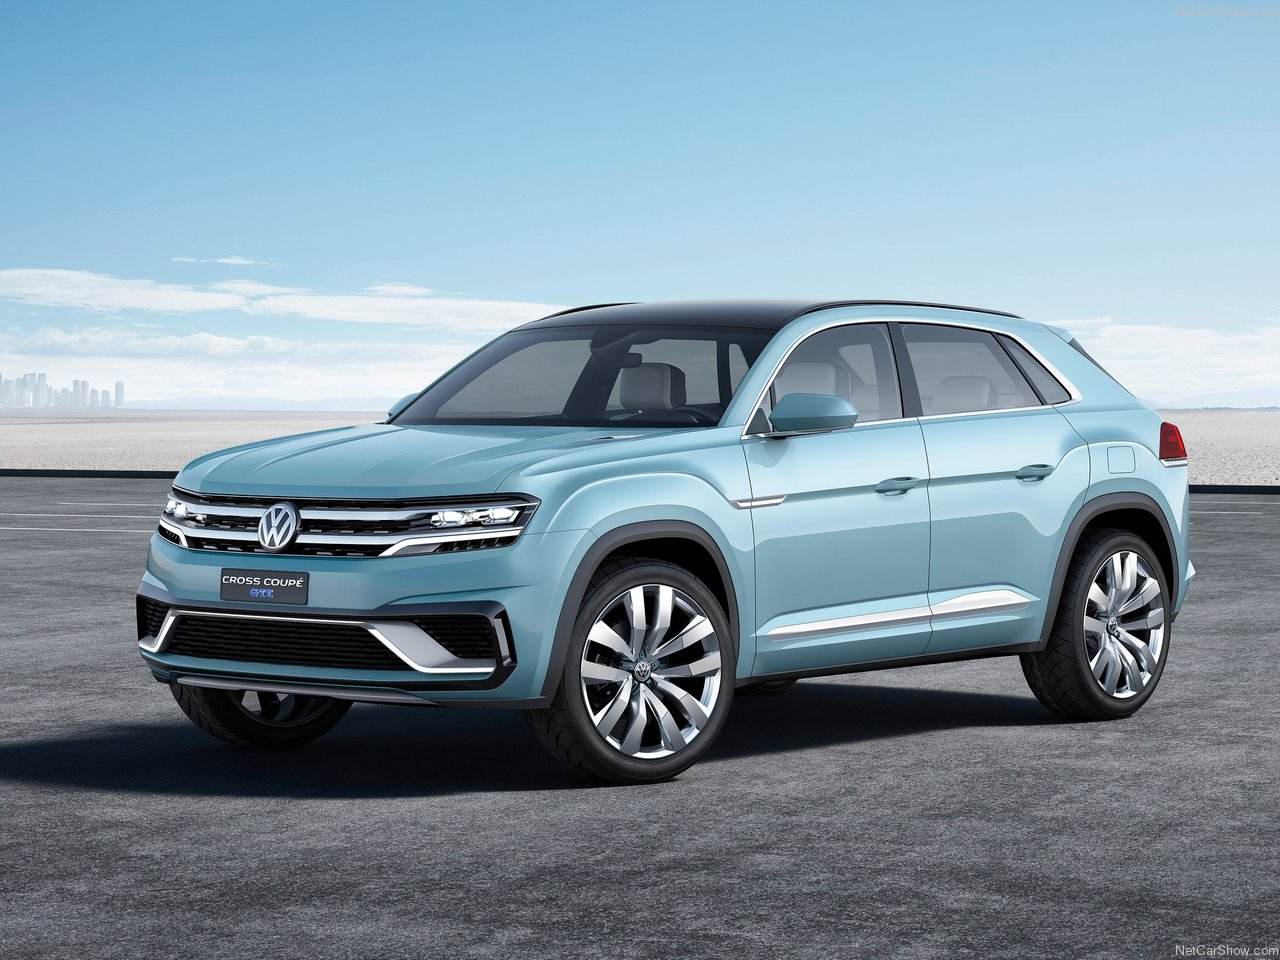 Volkswagen-Cross_Coupe_GTE_Concept-2015-1280-06